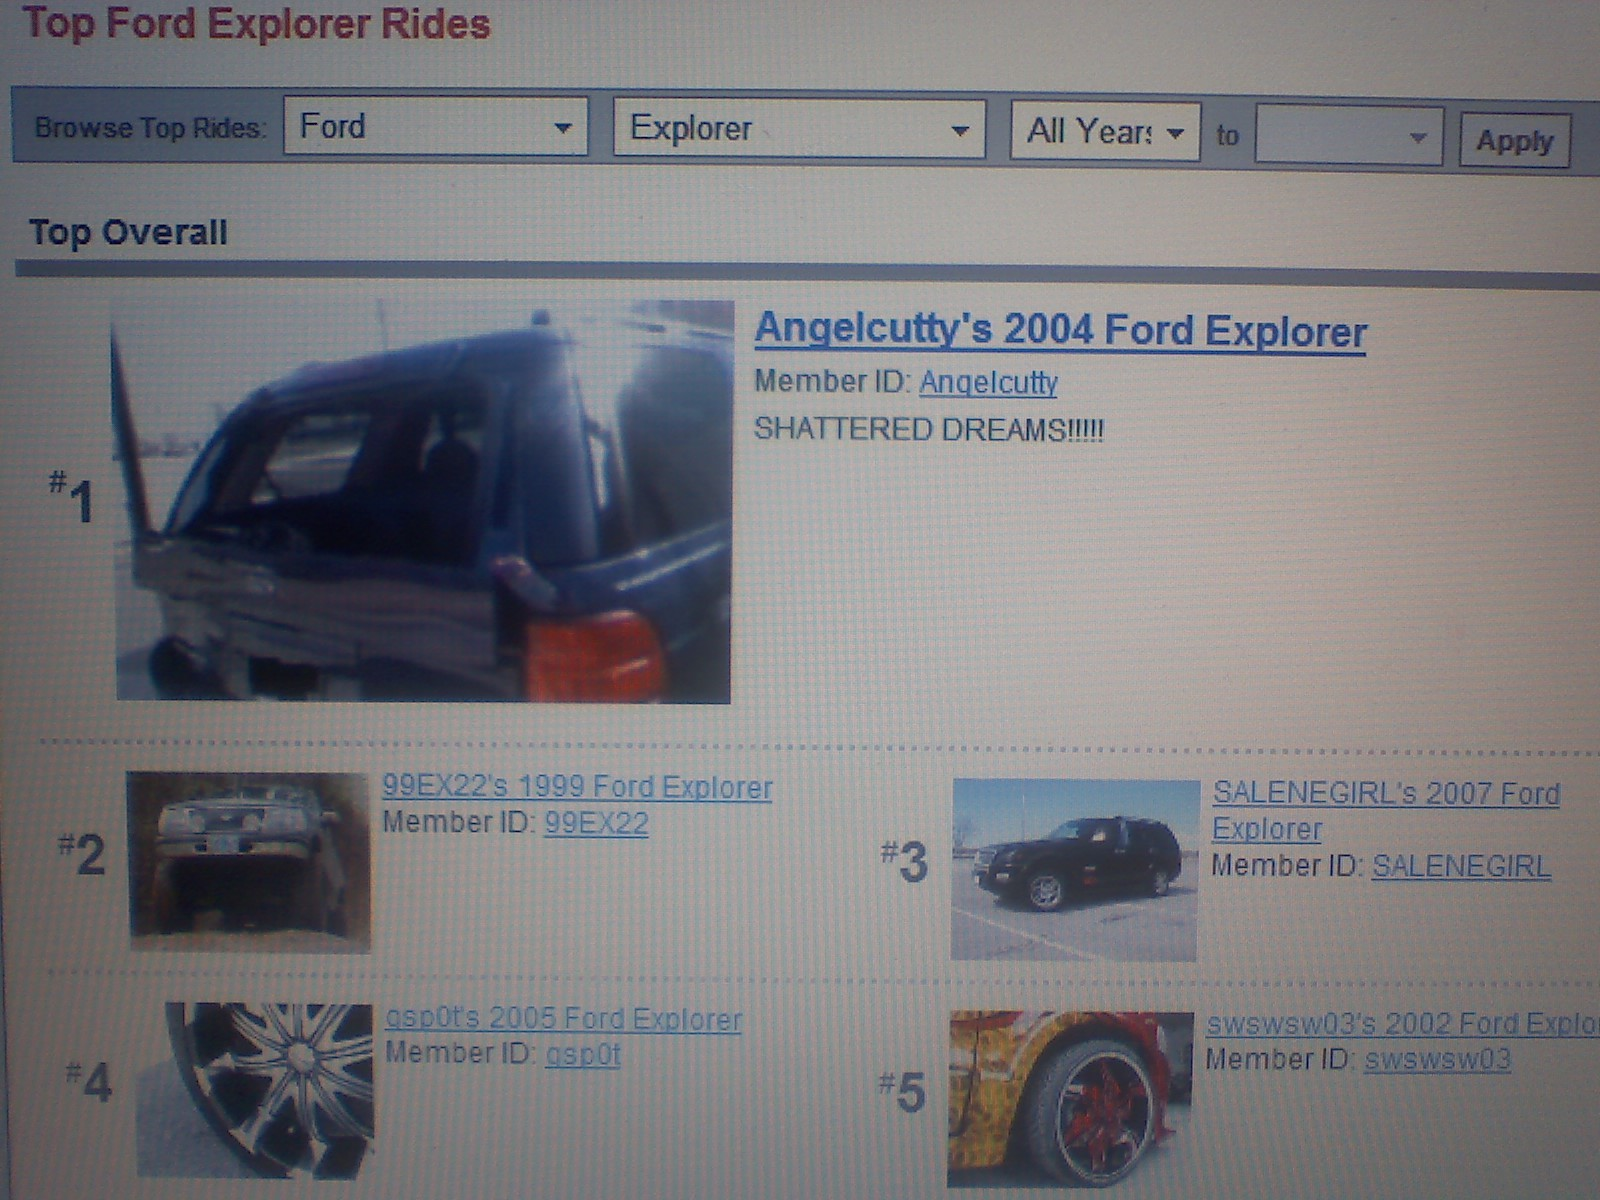 Angelcutty 2004 Ford Explorer 12833013